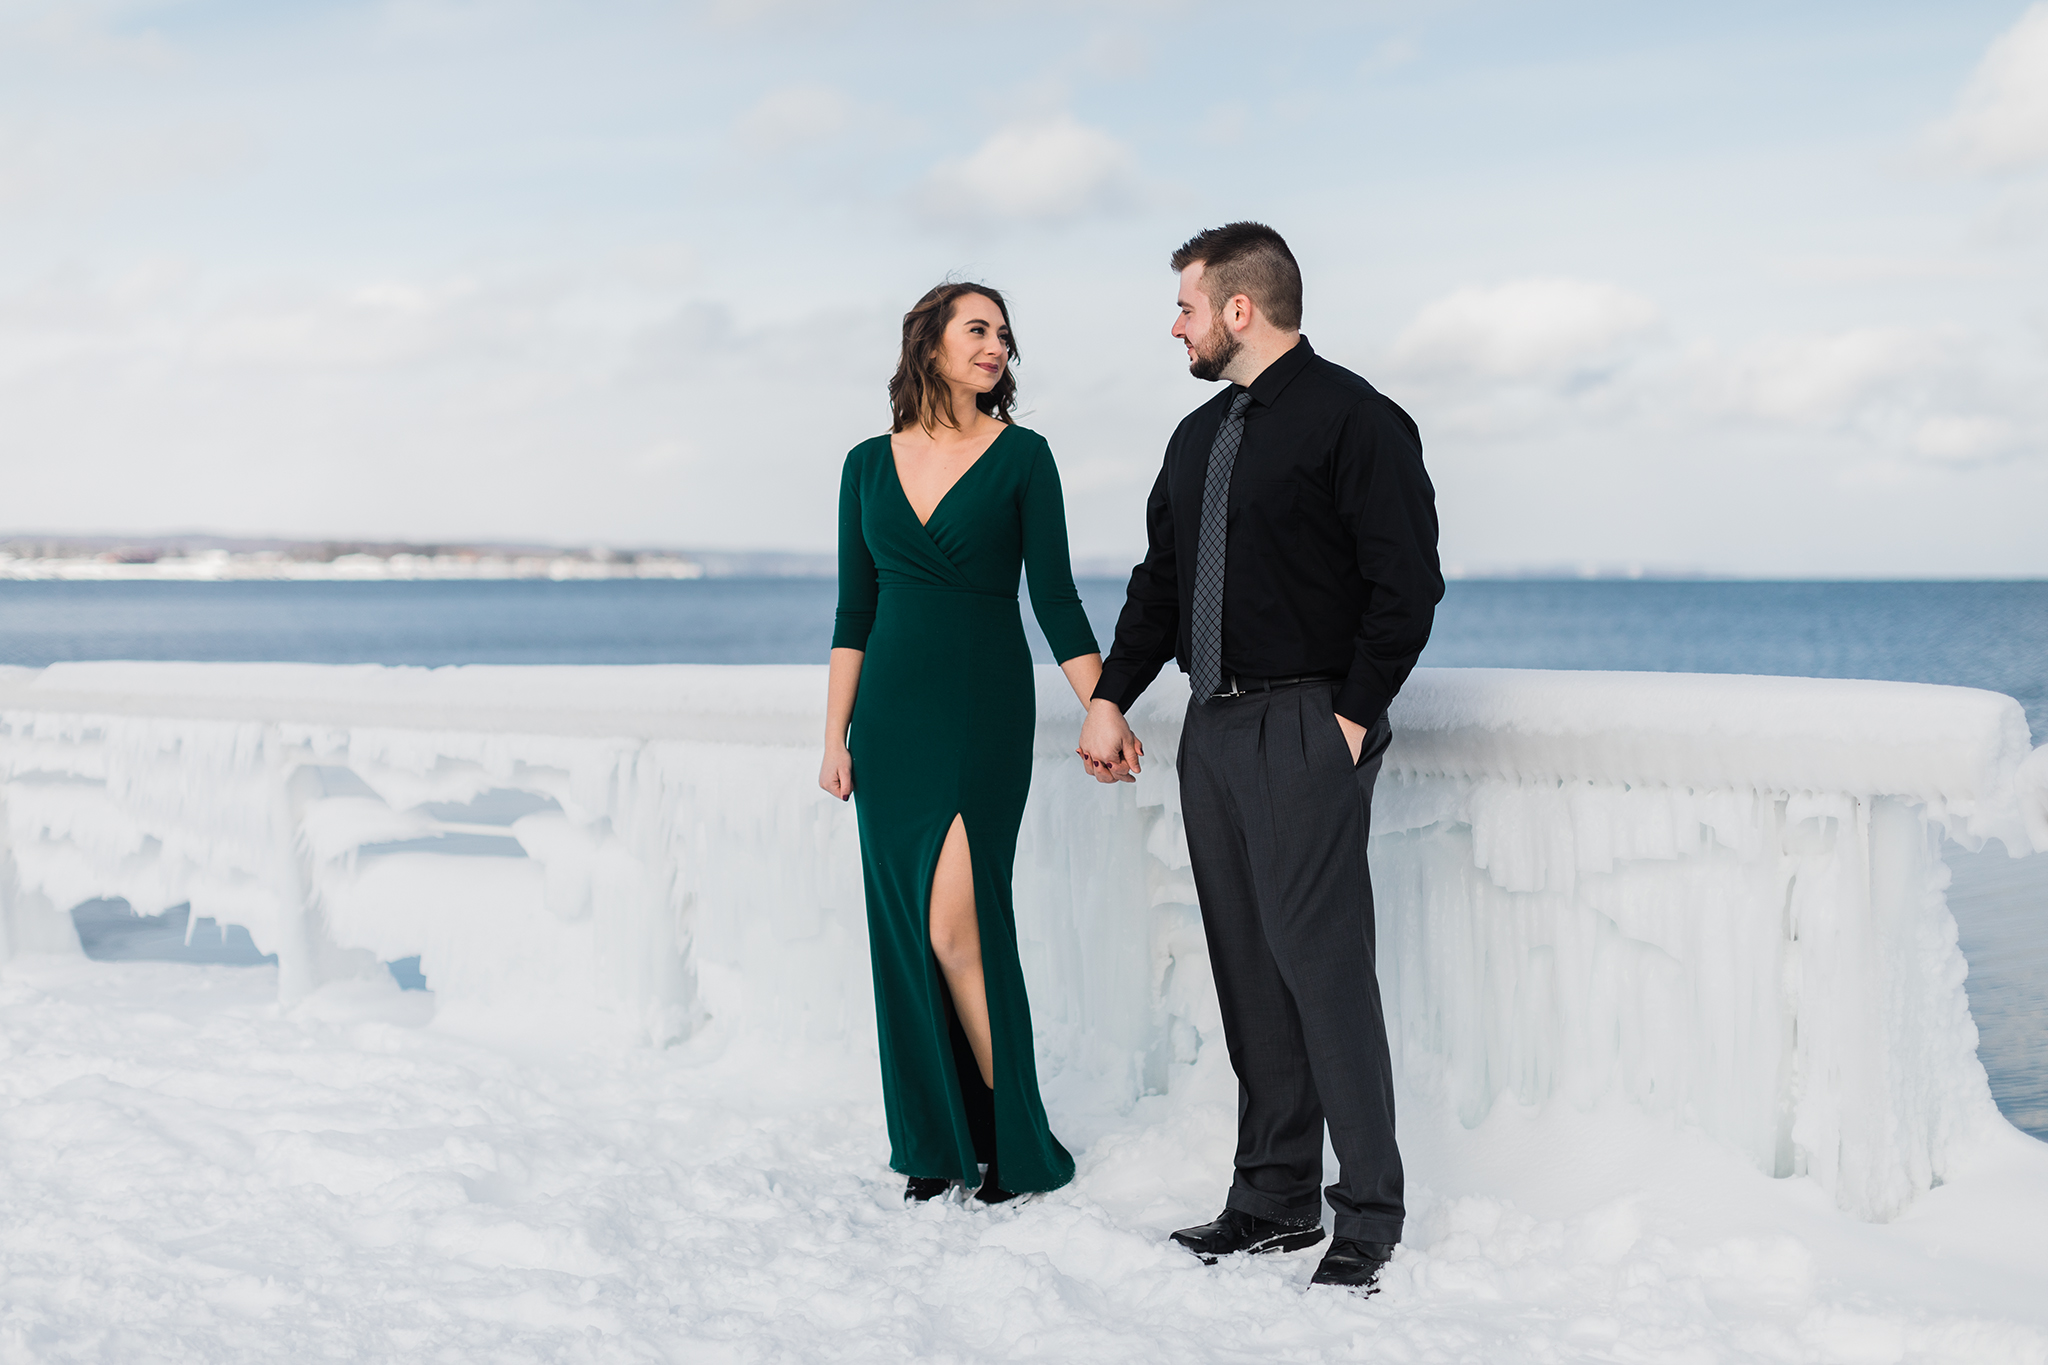 Downtown Traverse City Ice engagement session, Rockhill Studio, Michigan wedding photographer